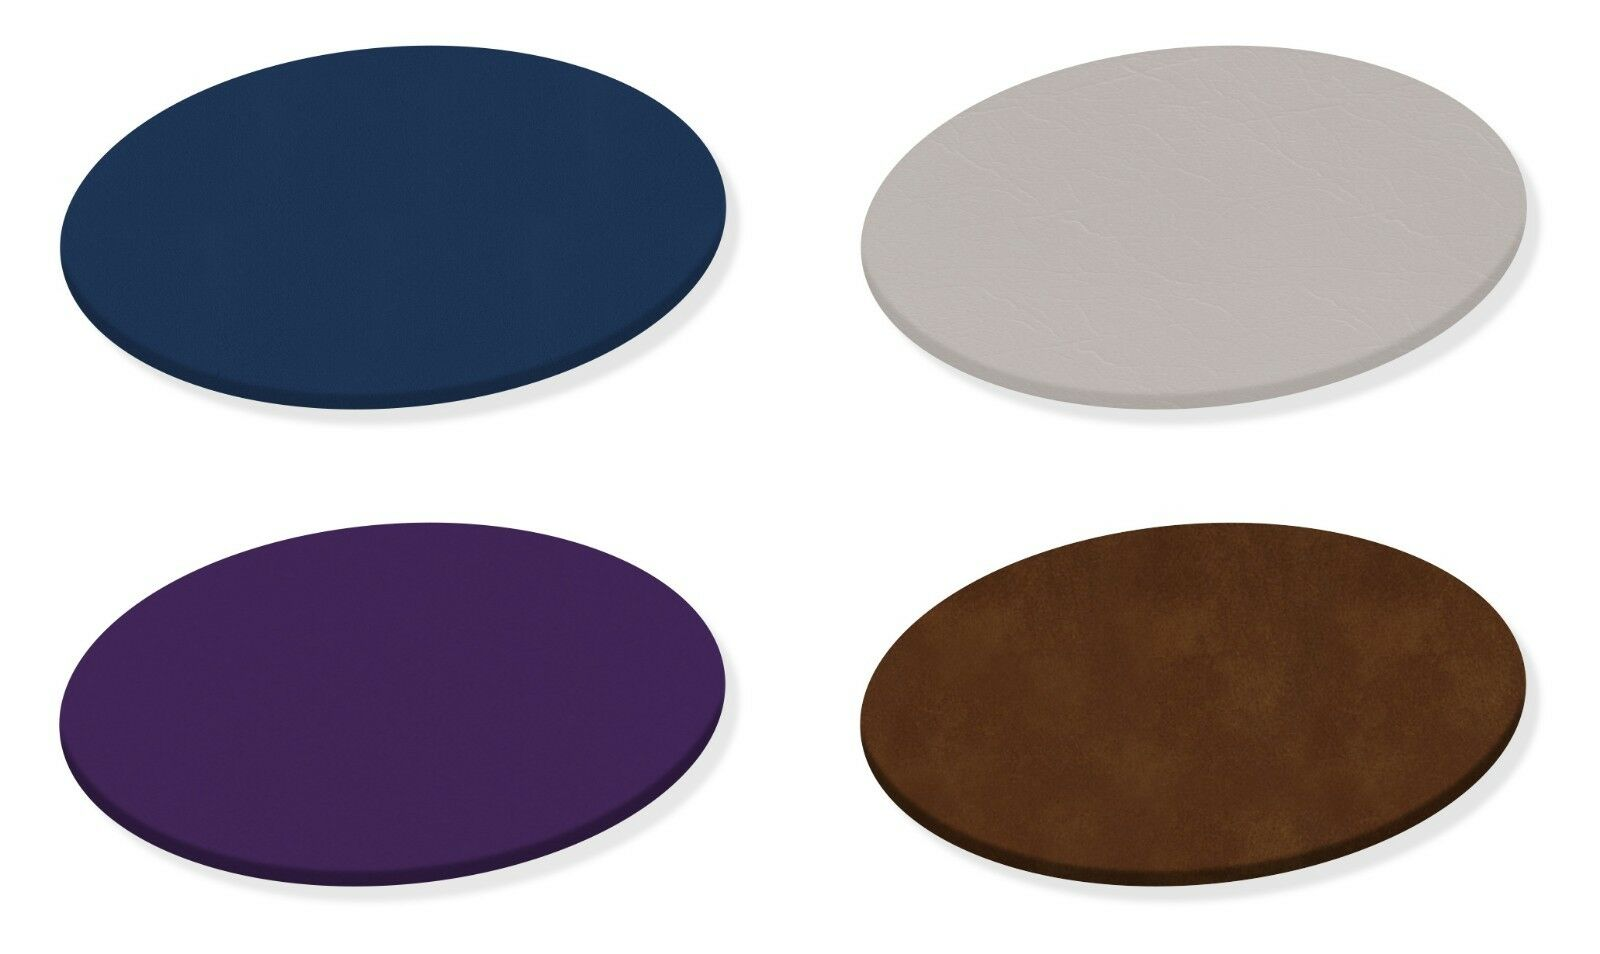 LAZY SUSAN 17  TO 37  ROUND colorD VINYL TURNTABLE GAME BOARDS MONITOR TV PLANT